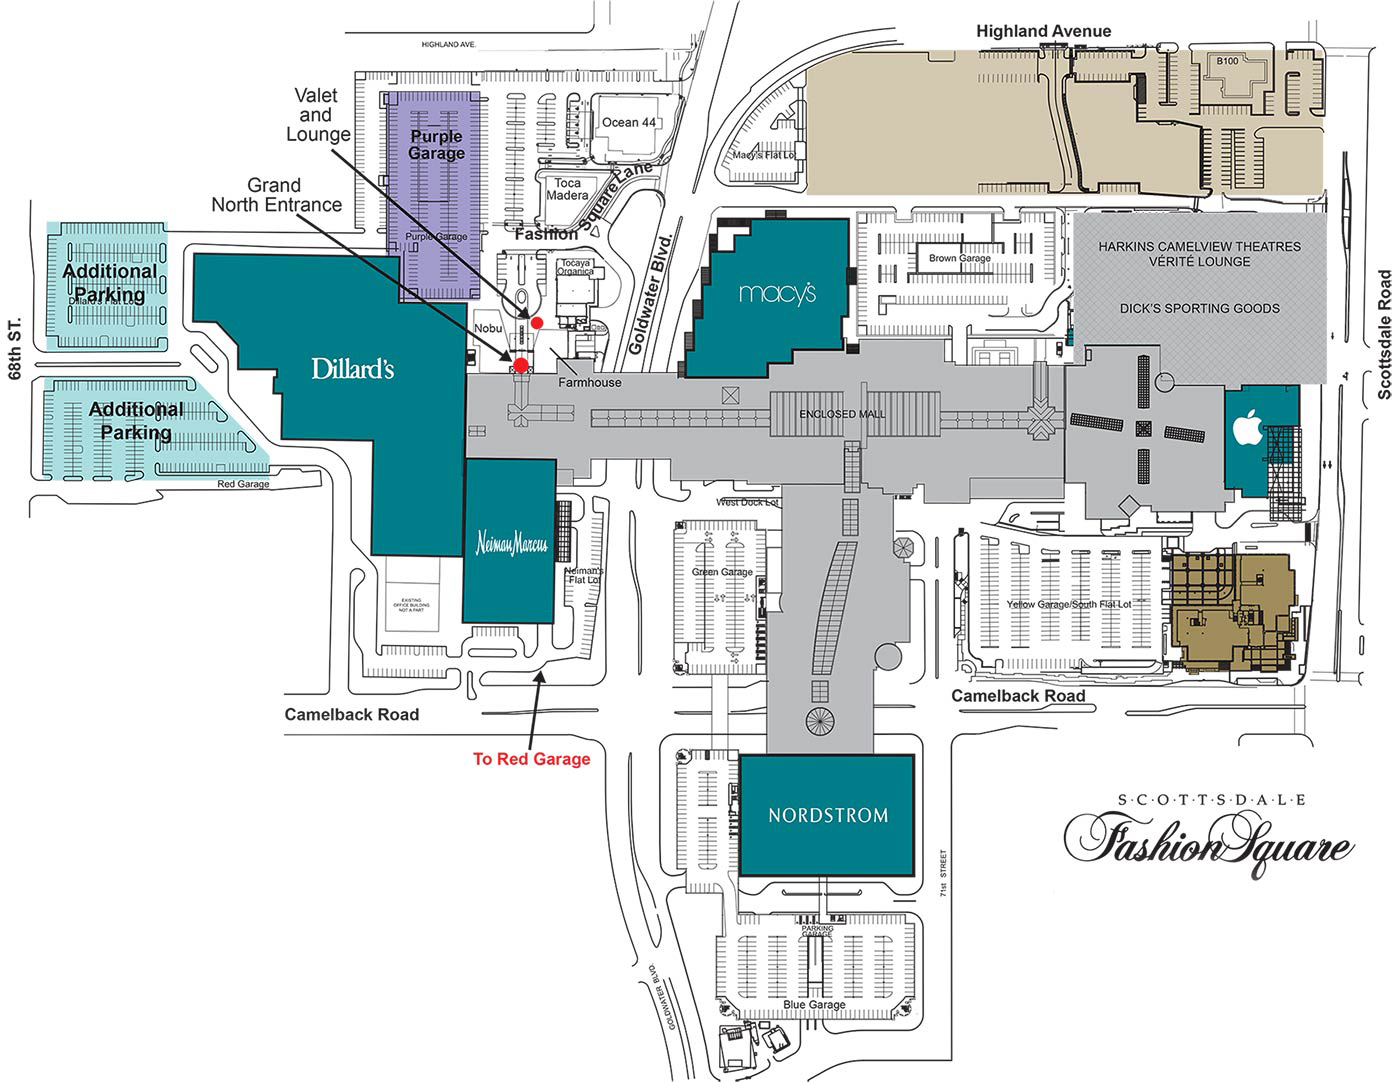 Parking Map of Scottsdale Fashion Square